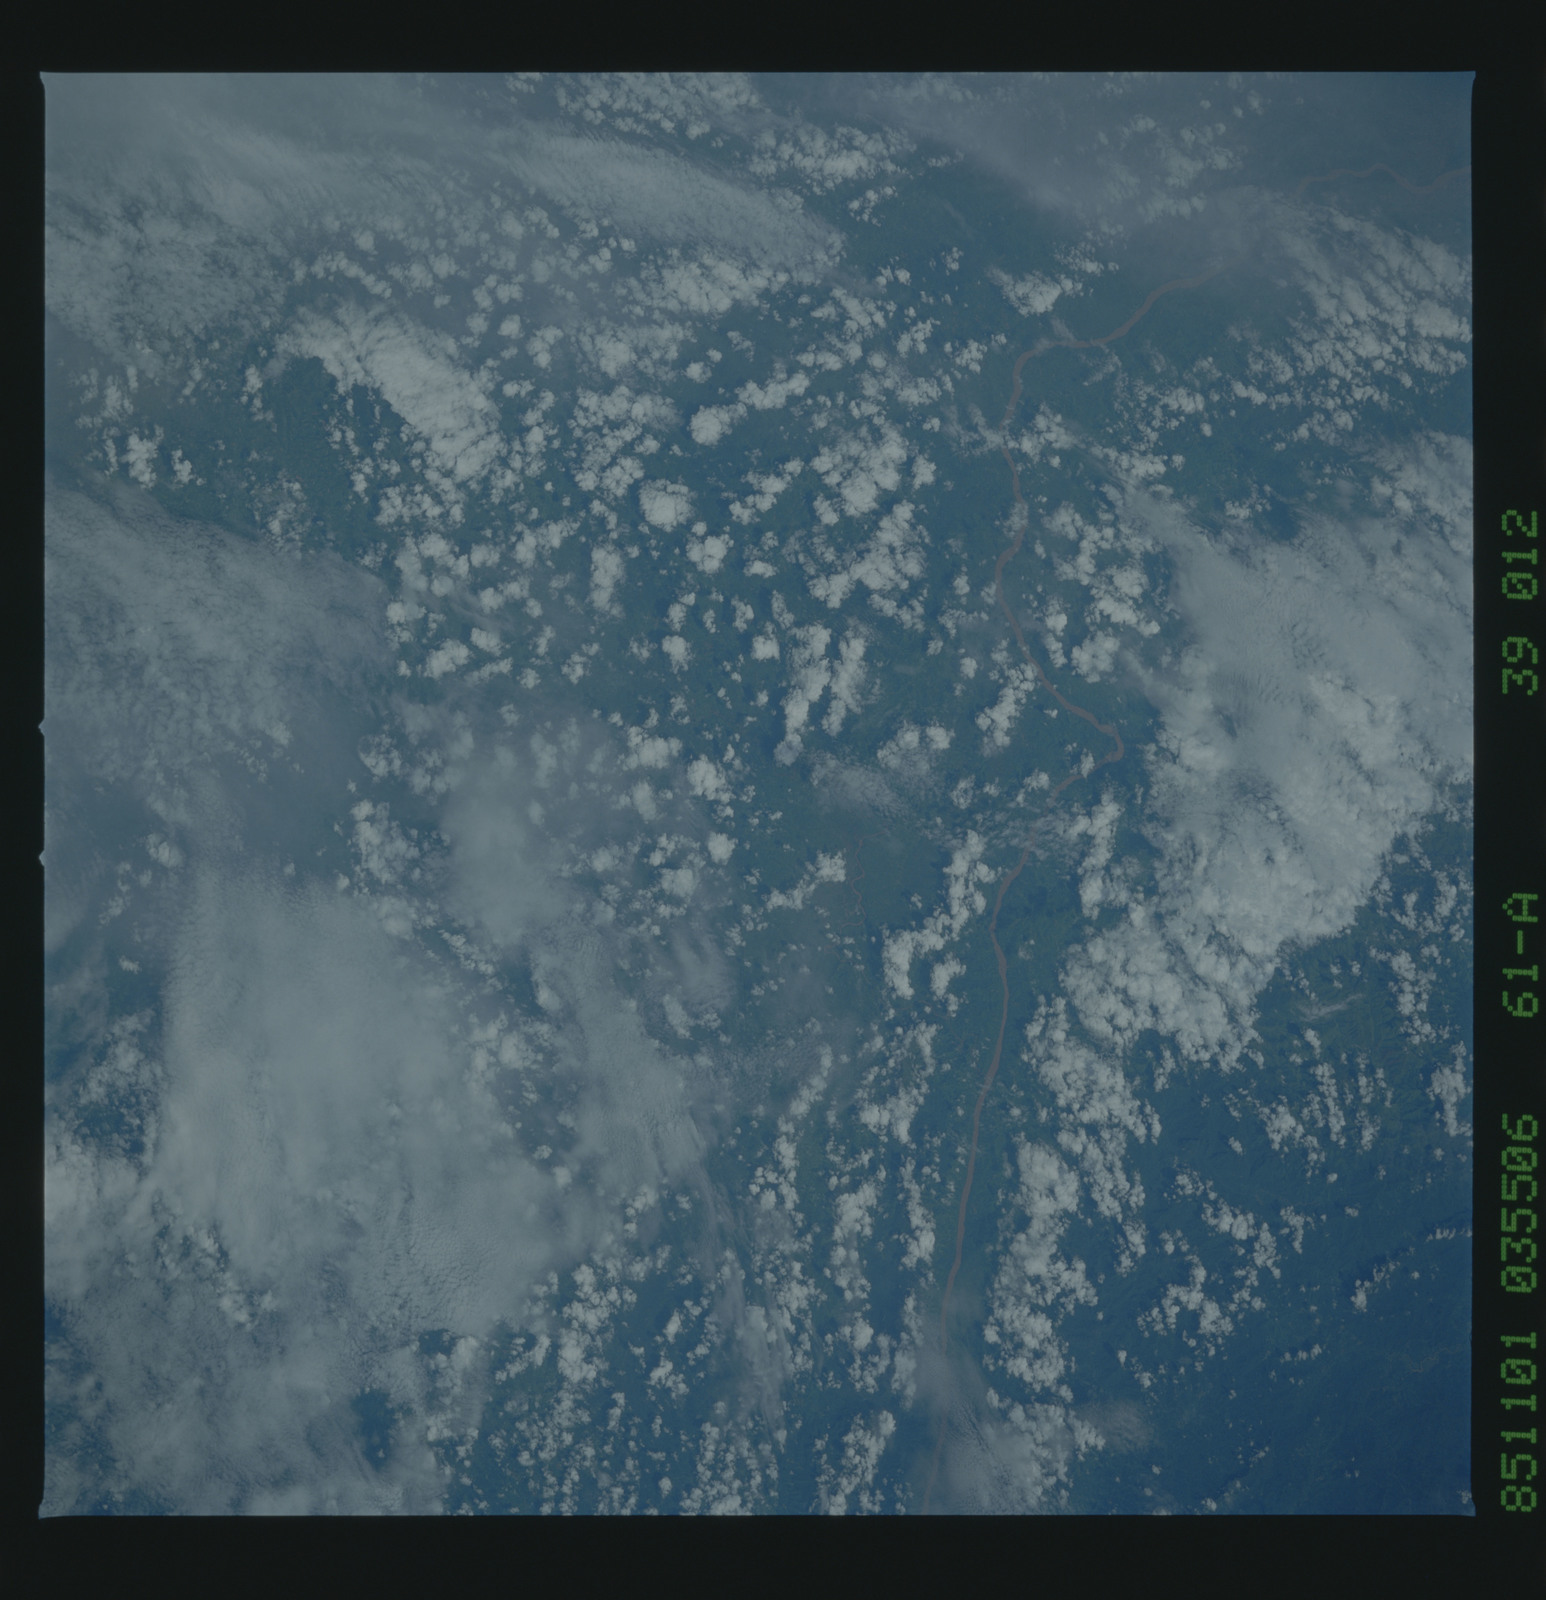 61A-39-012 - STS-61A - STS-61A earth observations